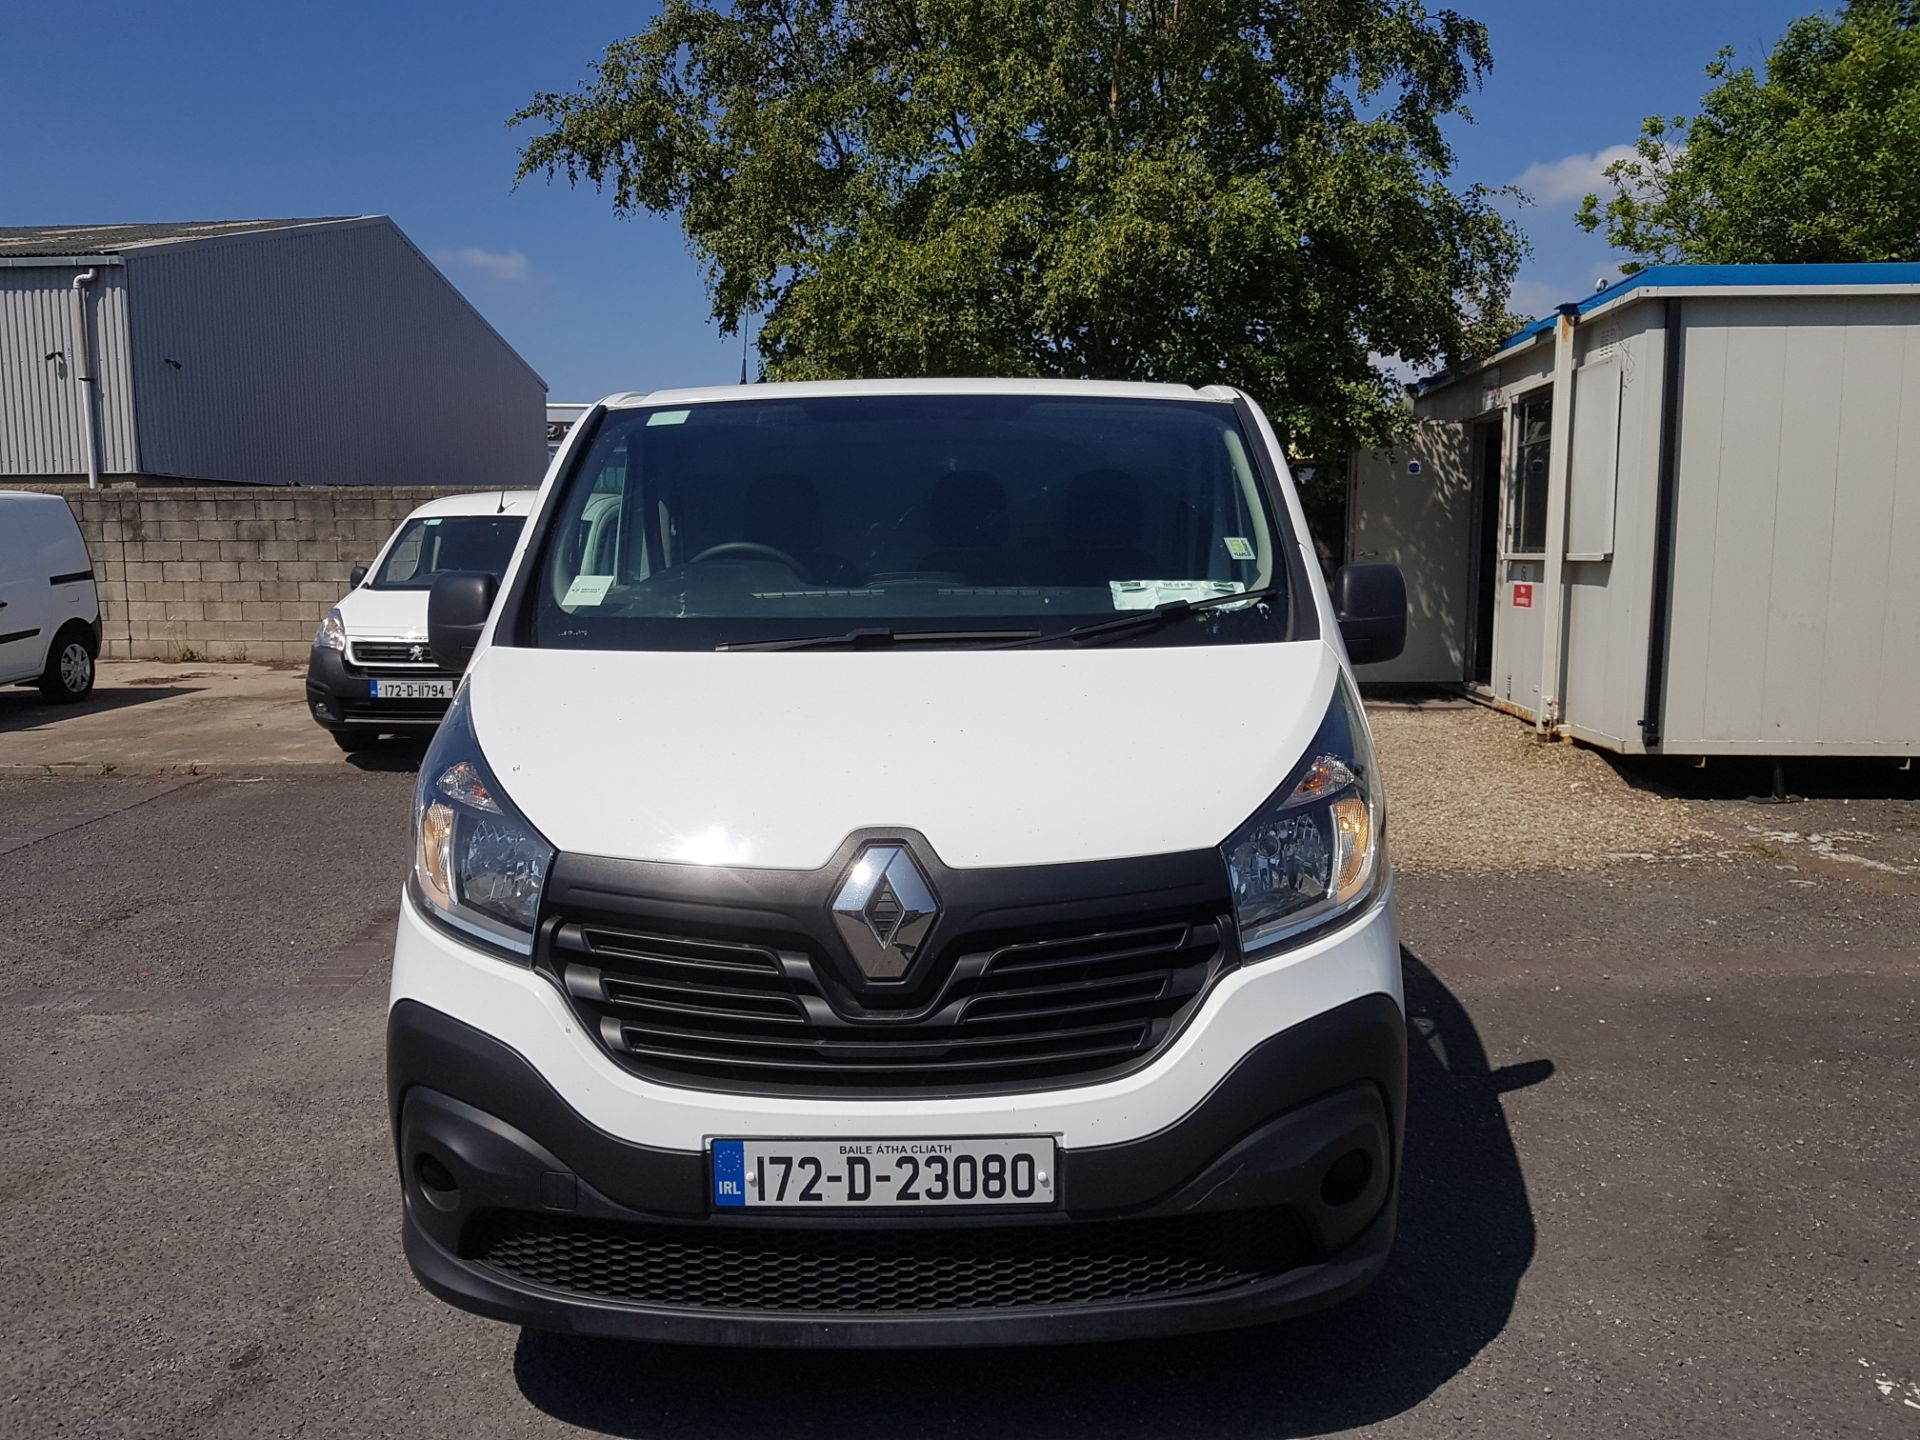 2017 Renault Trafic LL29 DCI 120 Business 3DR (172D23080) Image 8